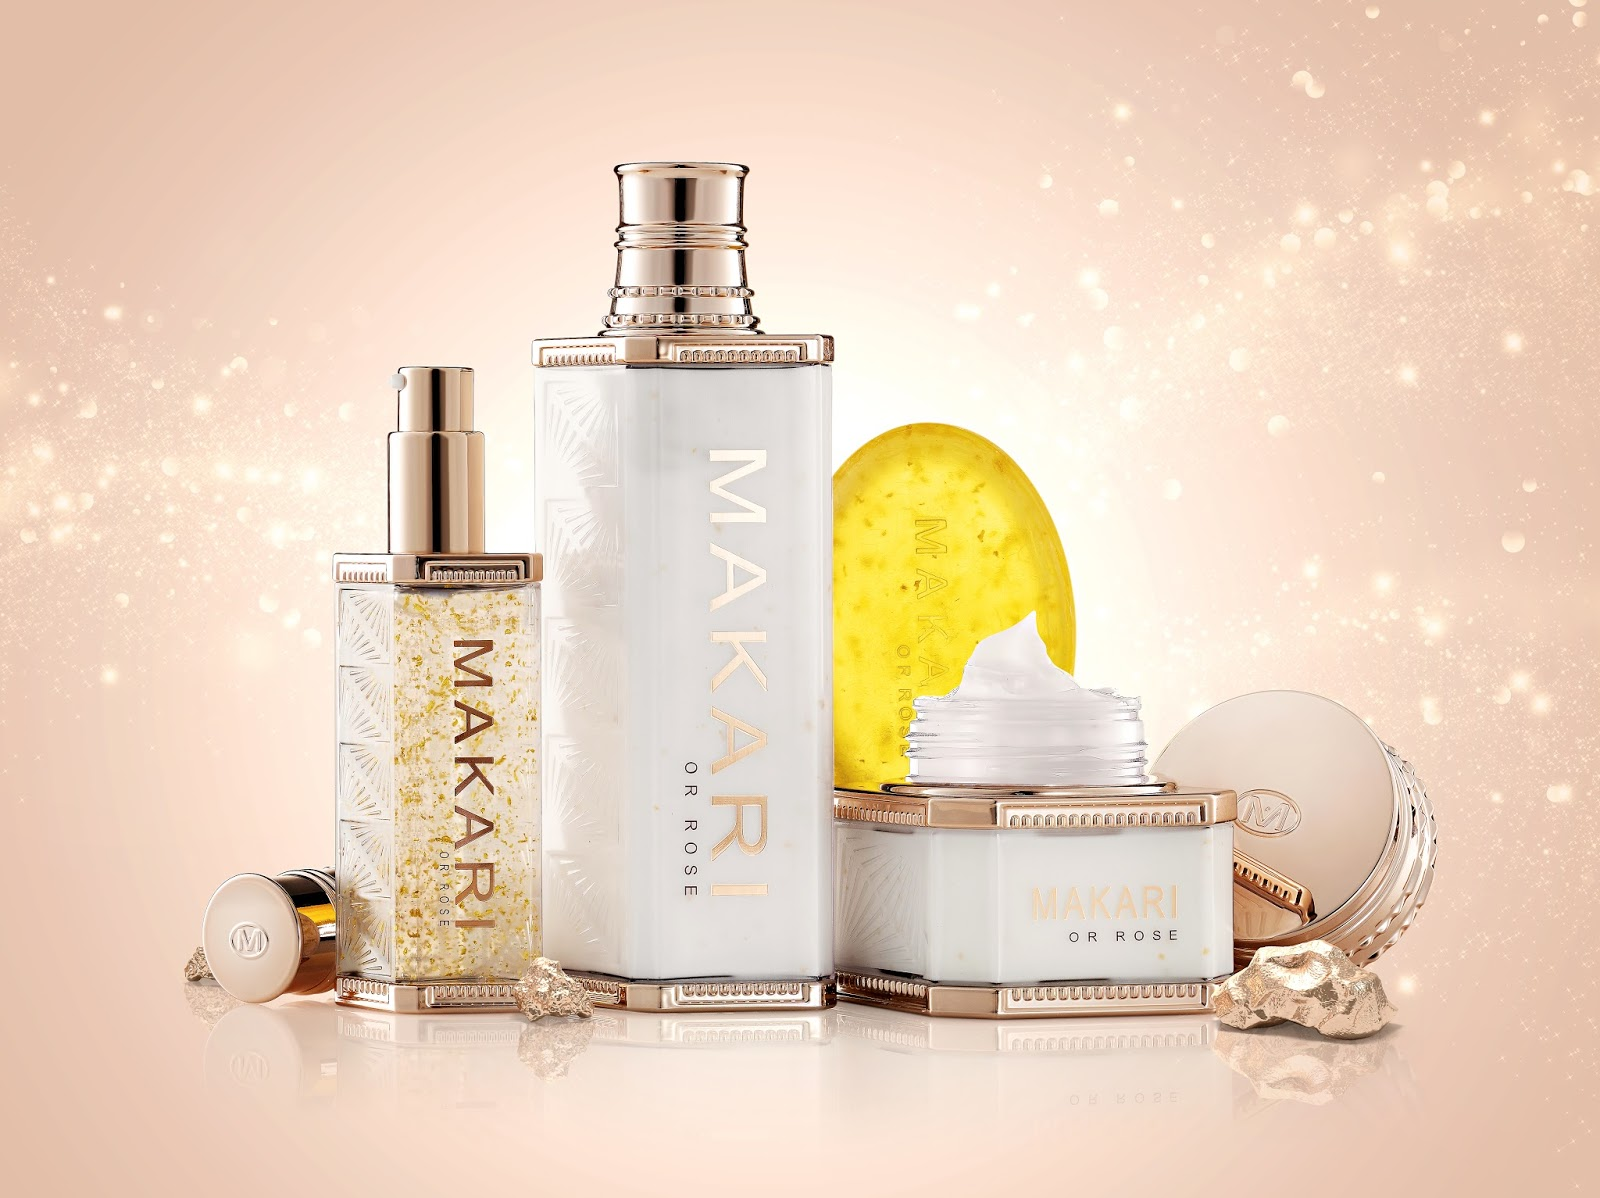 Review Makari De Suisse 24k Gold Skincare Collection Evergreen Reed Diffuser Set Serenity Dream 30 Ml This Is A Special Line That Has And Probiotics In It The An Anti Aging Works Well